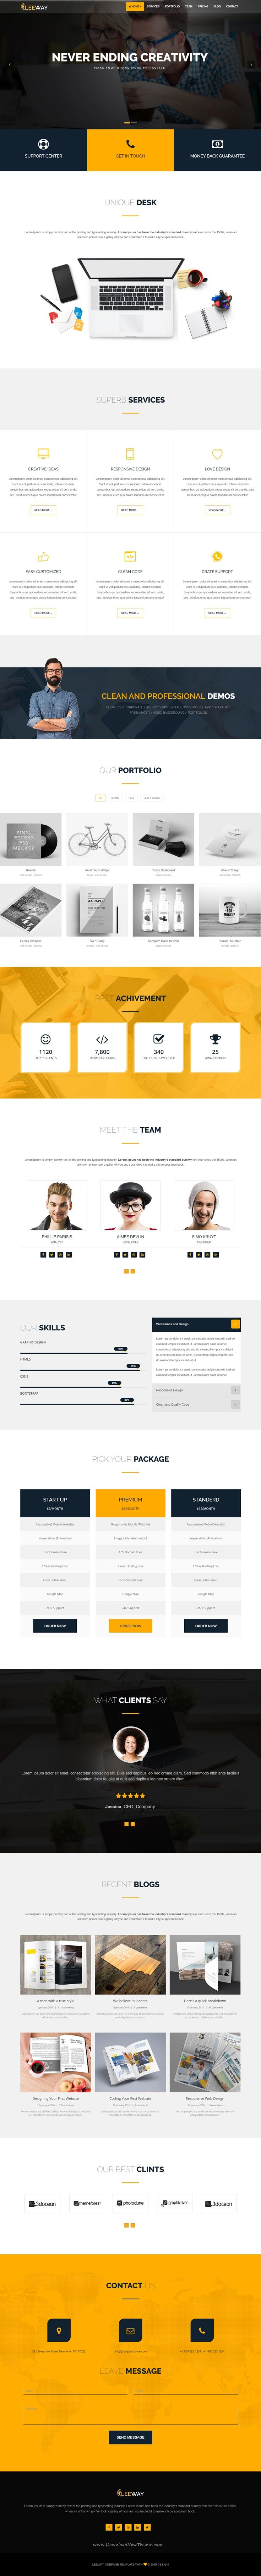 Leeway is fully responsive, creative, clean, and multipurpose onepage template with latest web design styles. It has 10+ stunning homepage layouts. Demo #startup #website